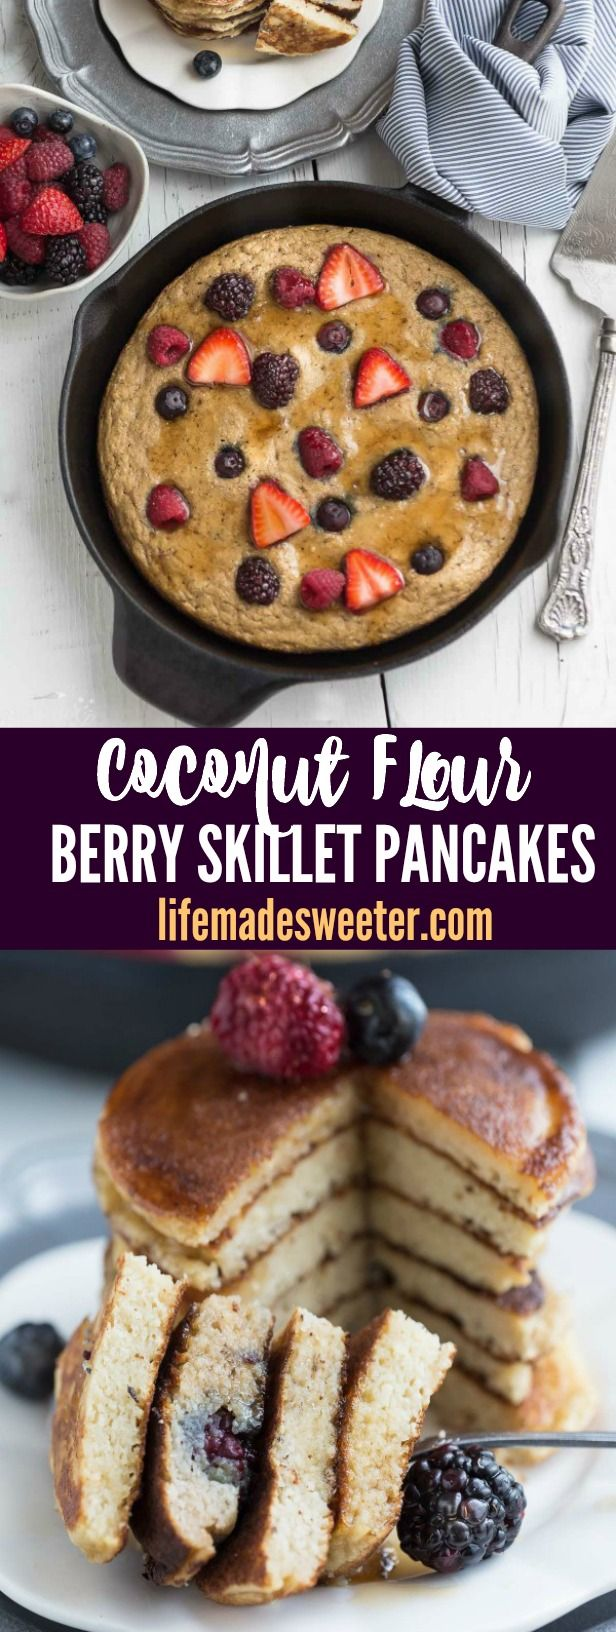 Best 25 sugar free pancakes ideas on pinterest banana gluten best 25 sugar free pancakes ideas on pinterest banana gluten free pancakes low sugar breakfasts and lactose free breakfasts ccuart Choice Image